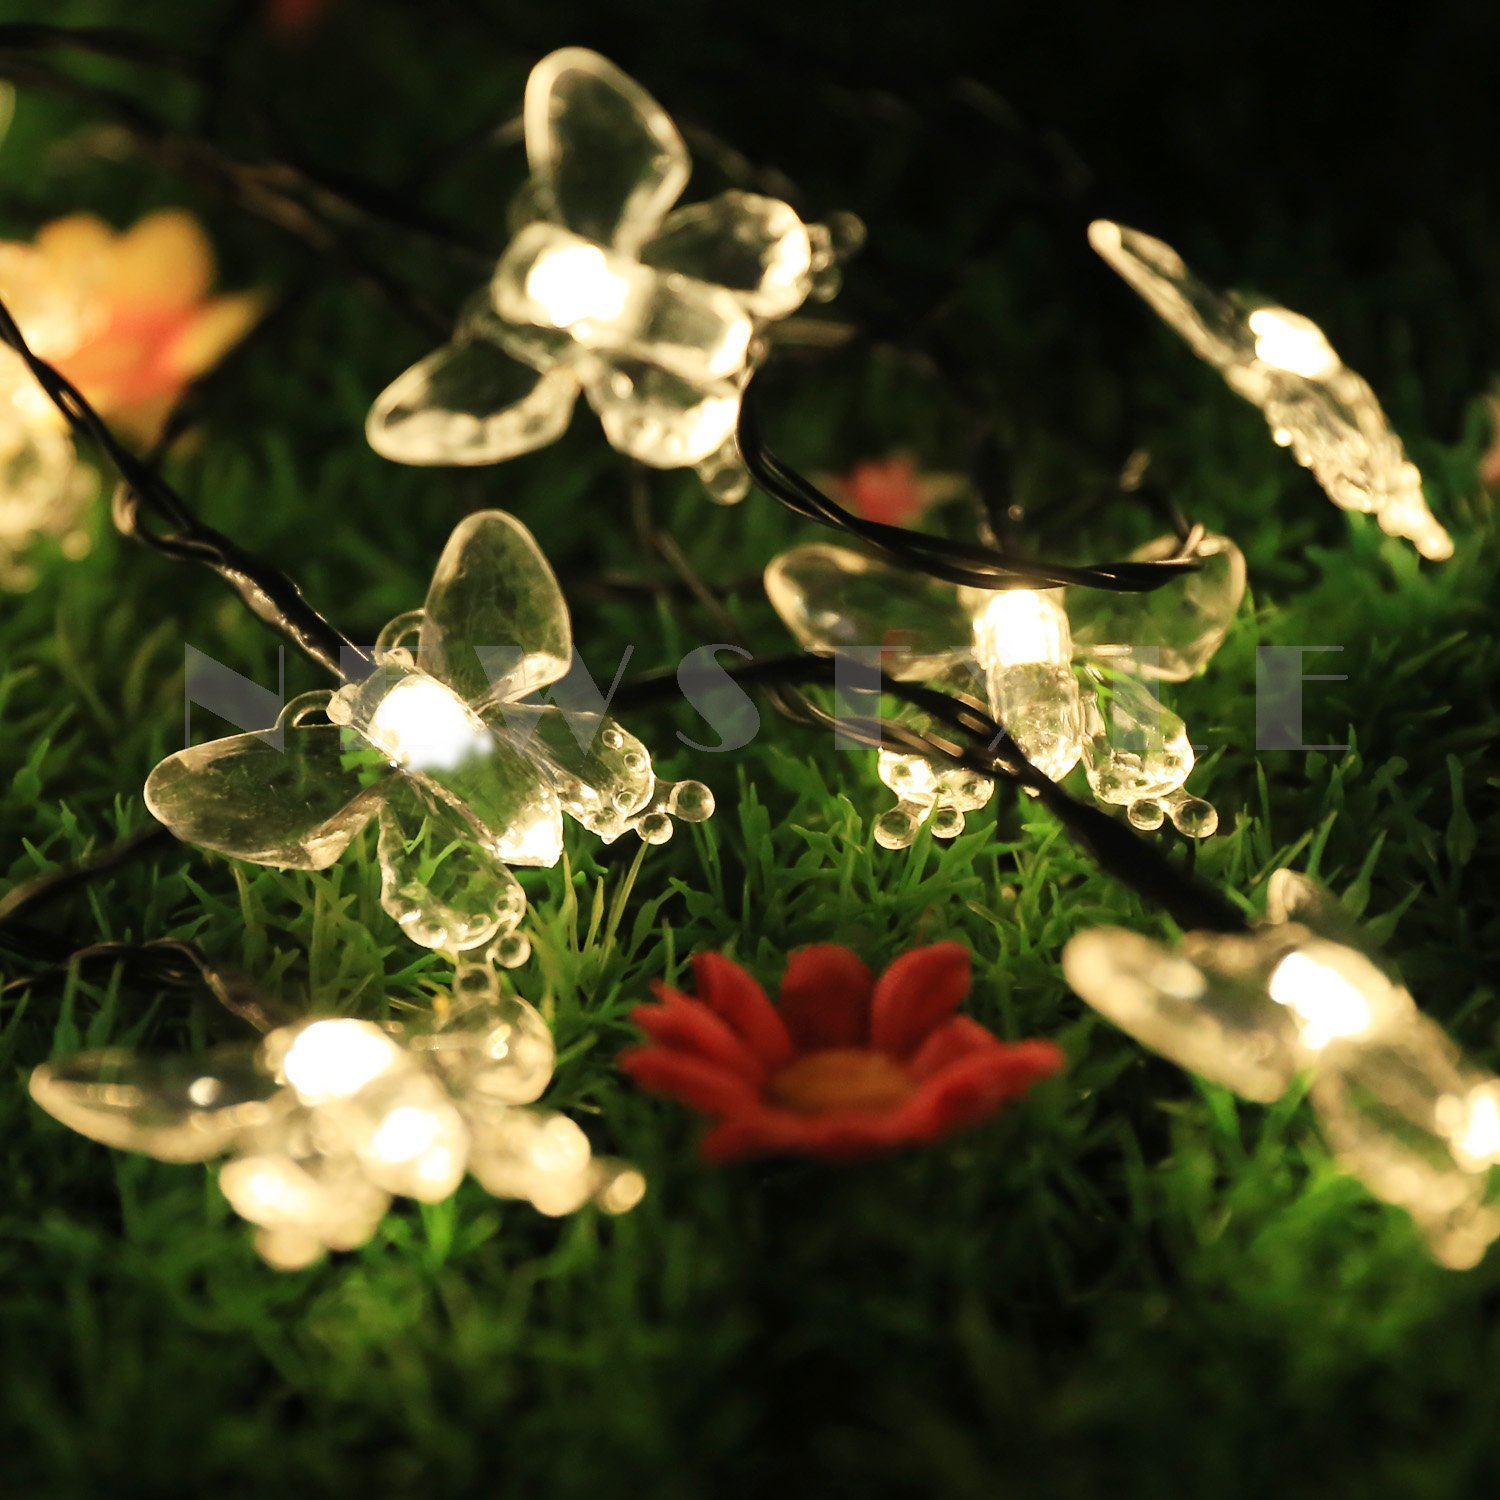 Solar Led Christmas Night Lights 15ft 20 Led Fairy Butterfly Lights for Party, Brithday, Halloween, Wedding, Outdoor, Gardens(China (Mainland))